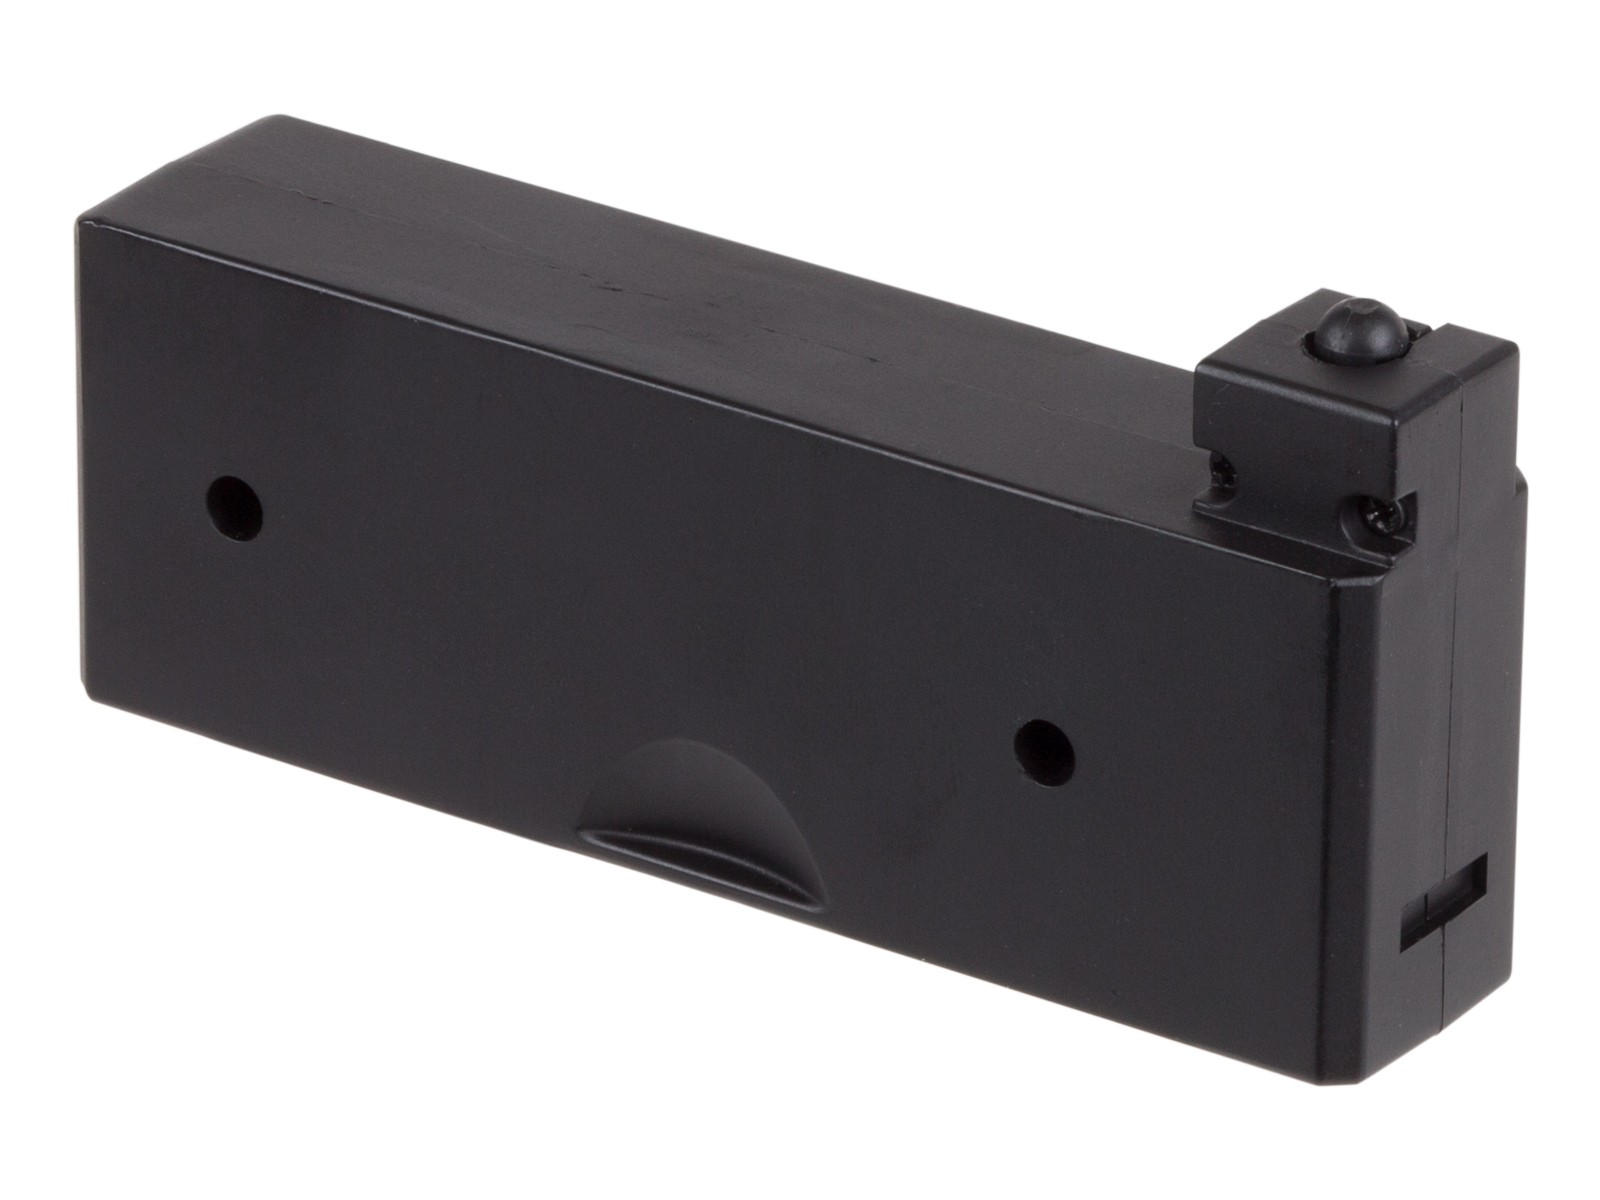 ASG M40A3 Airsoft Spring Rifle Magazine